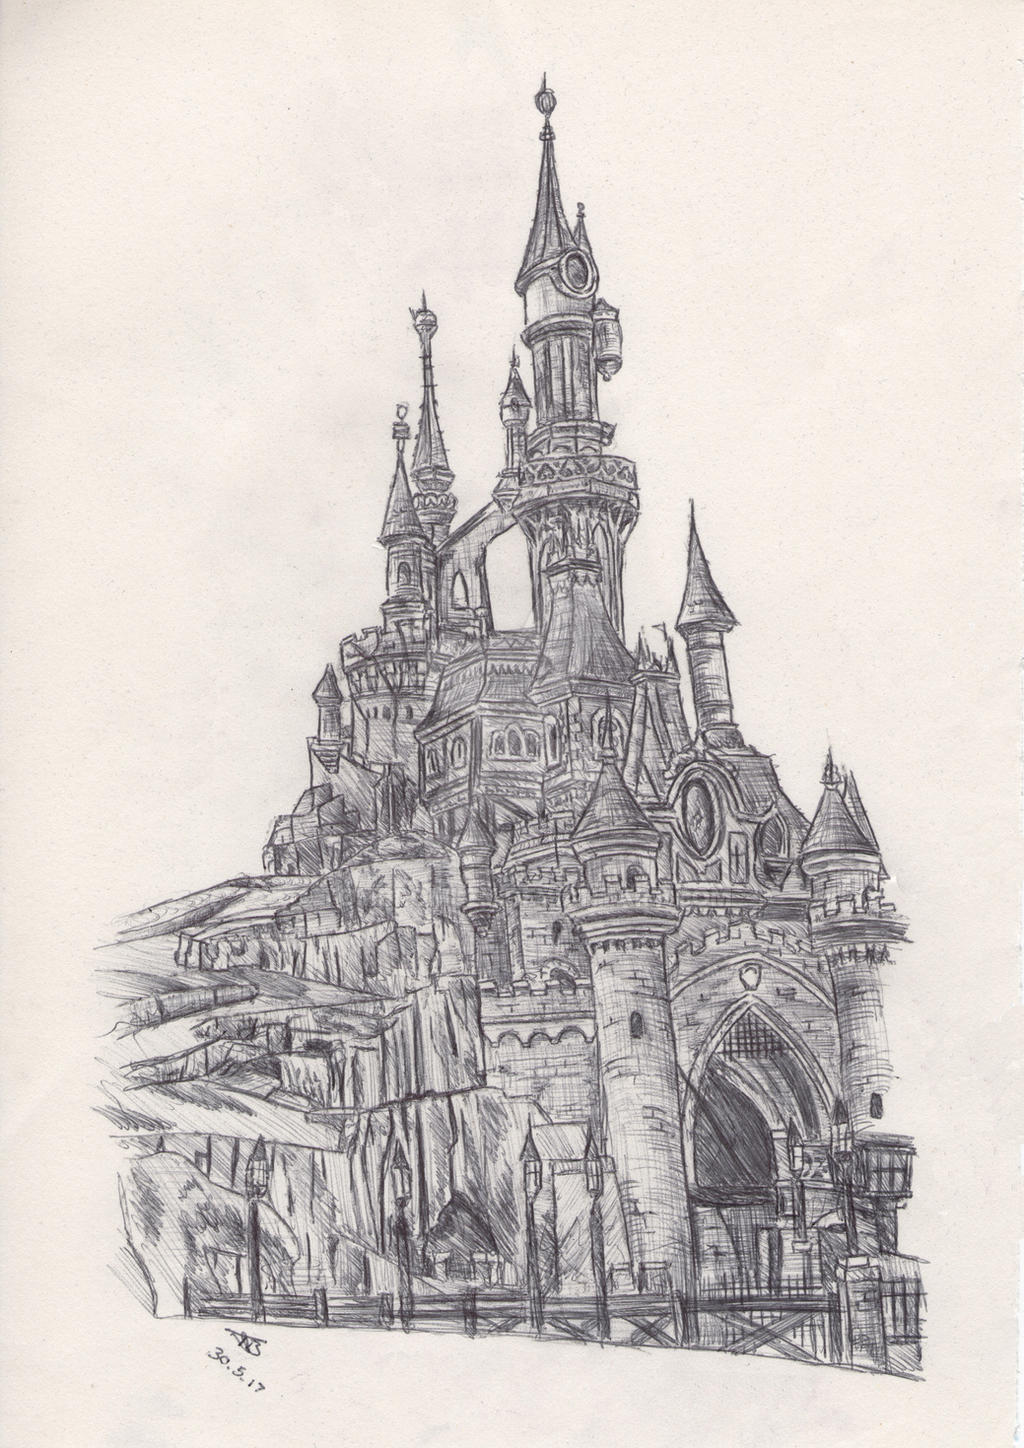 disneyland paris castle drawing by tombromley